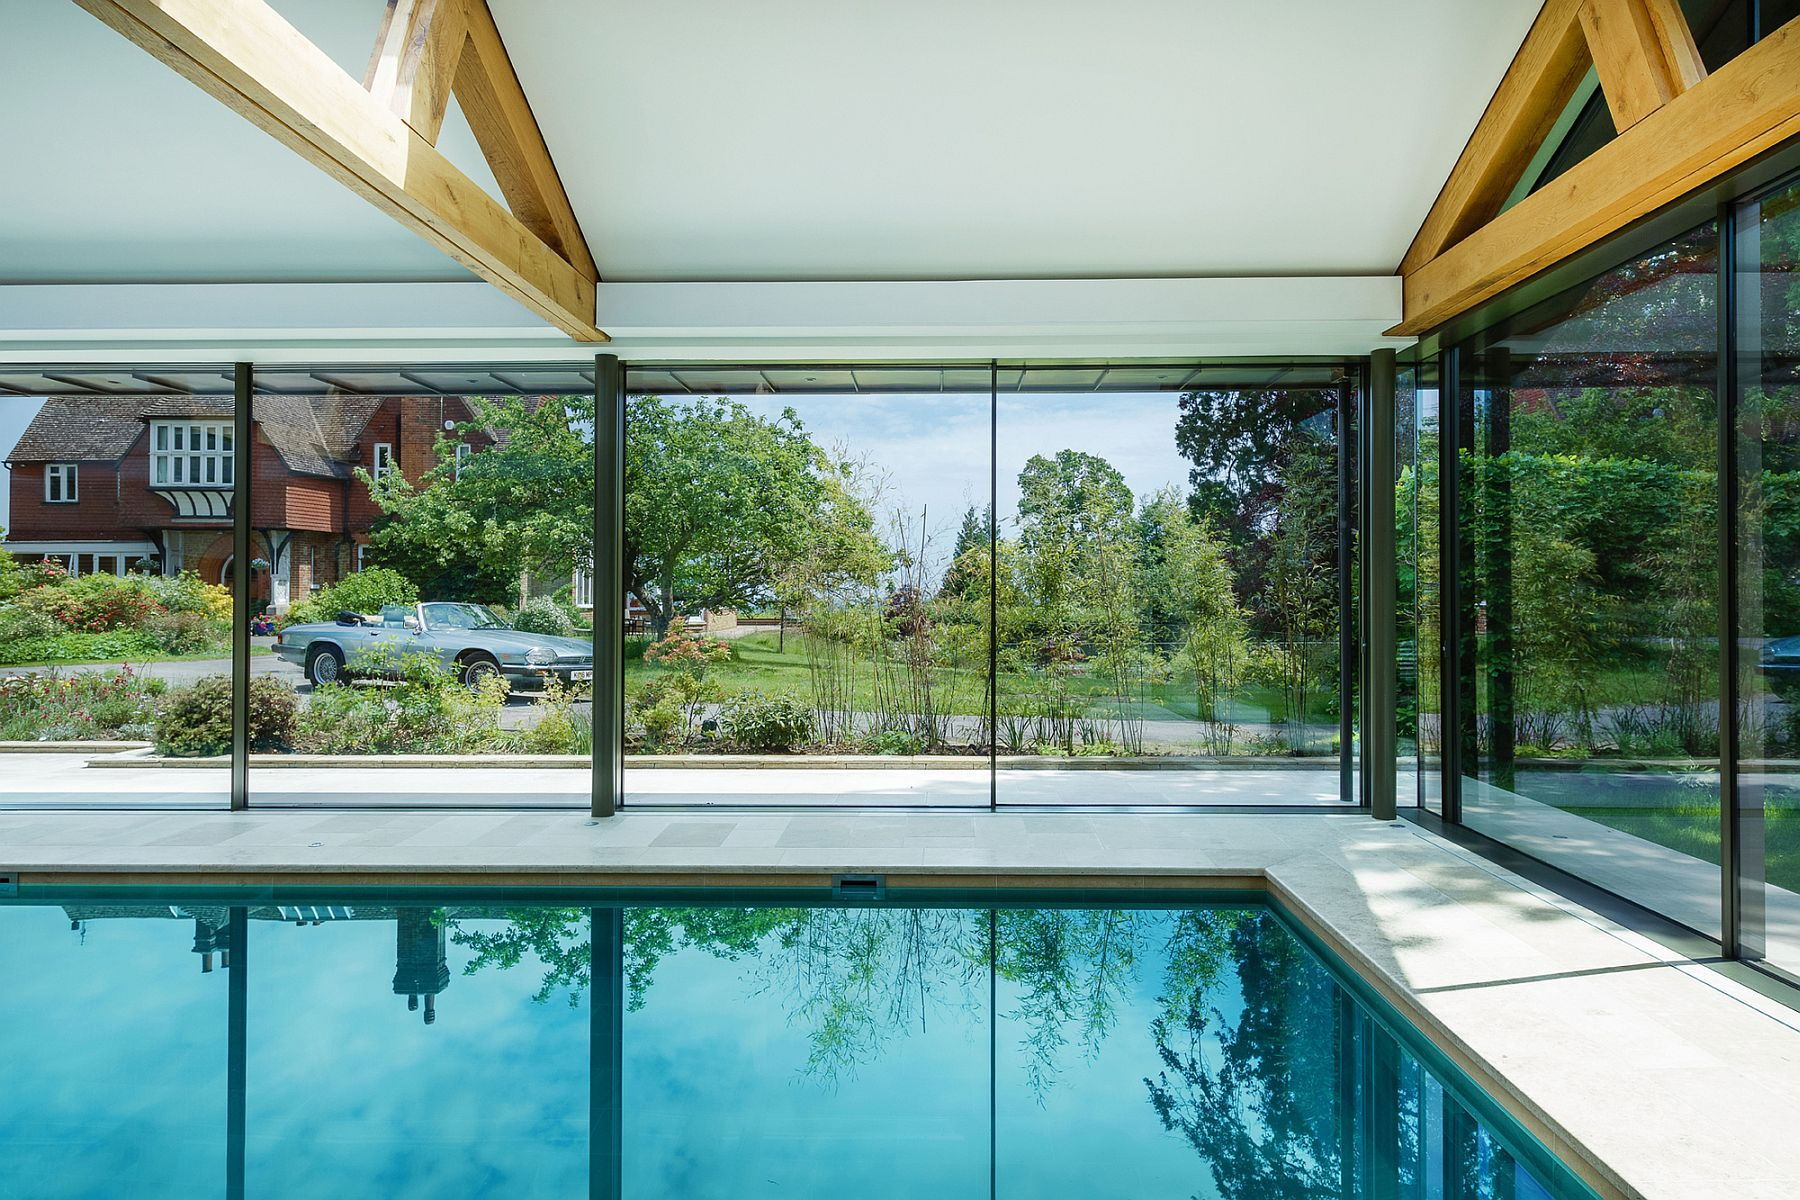 view-of-the-house-landscape-and-beyond-from-the-pool-house